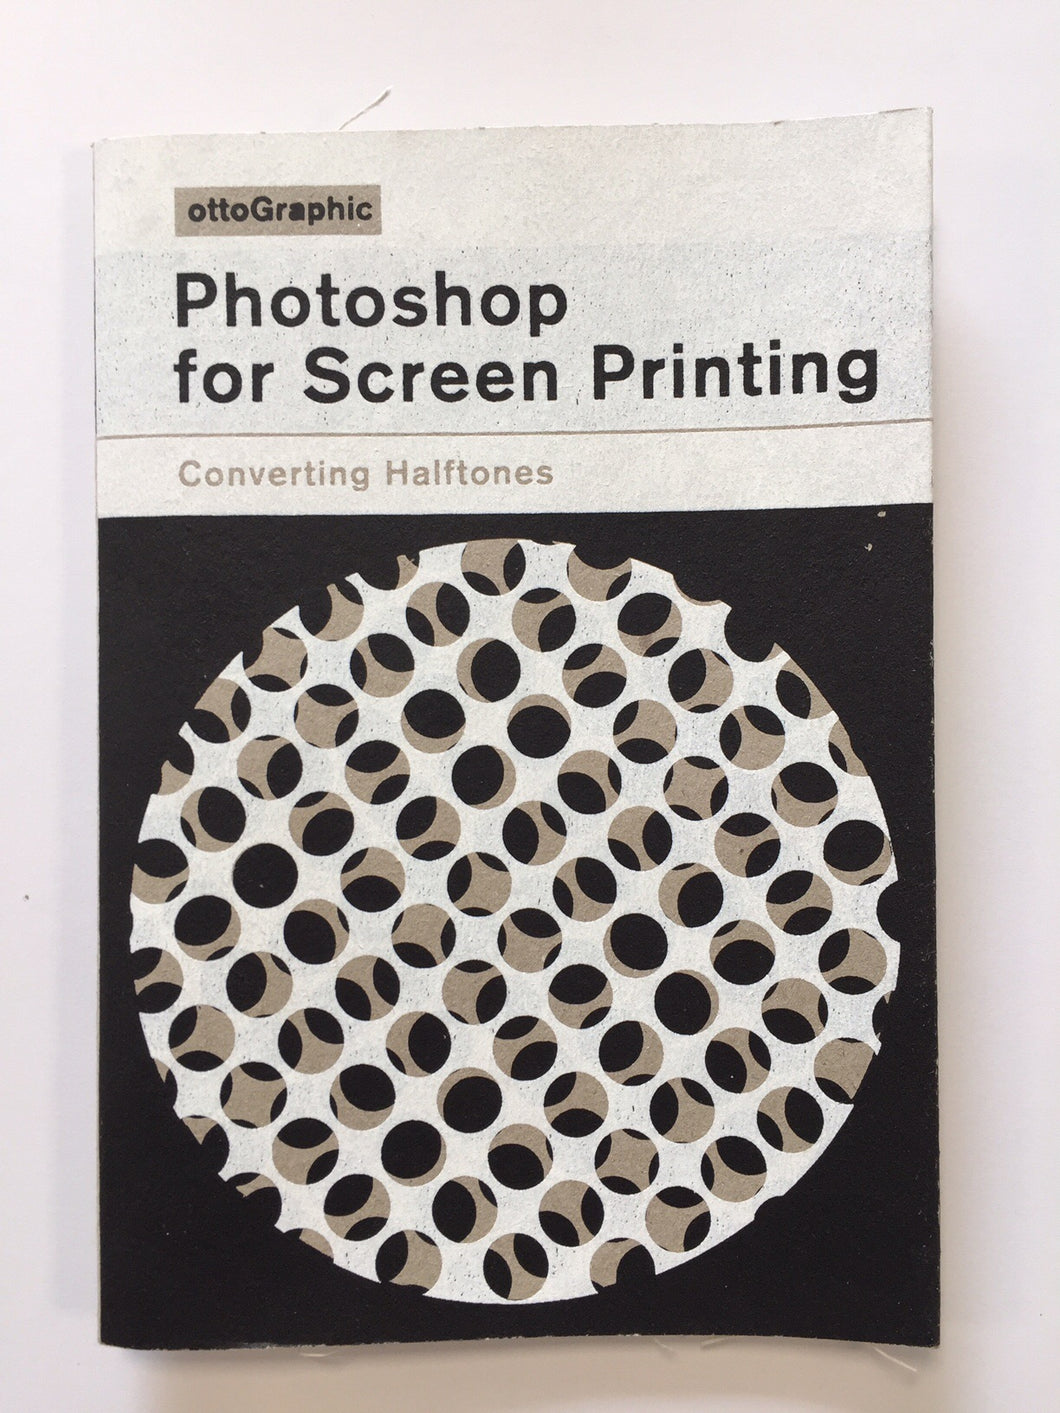 Photoshop for Screen Printing, 2nd edition | Otto (Ottographic)